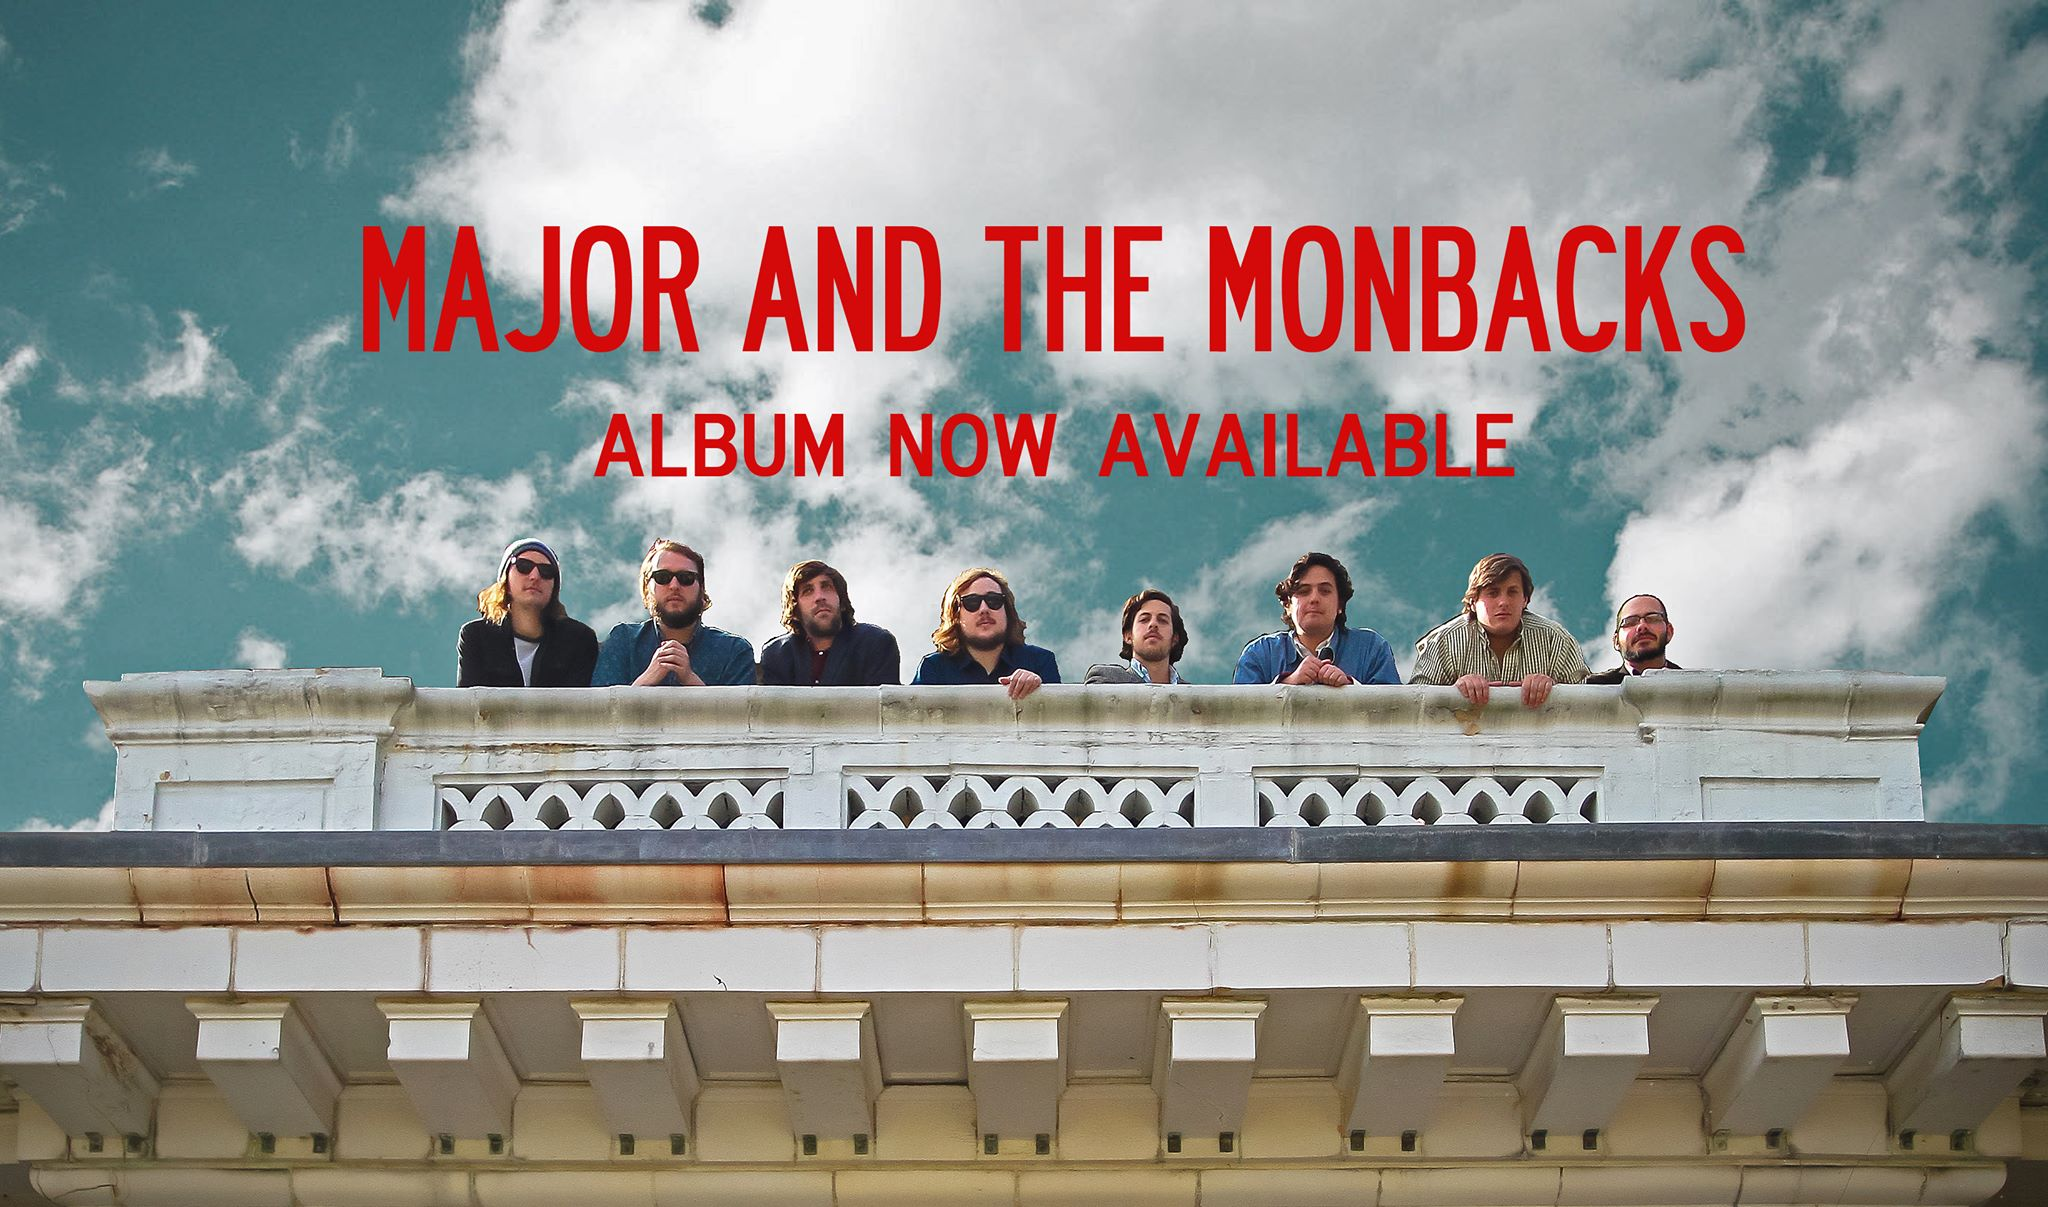 Major and the Monbacks Album Release Show Review